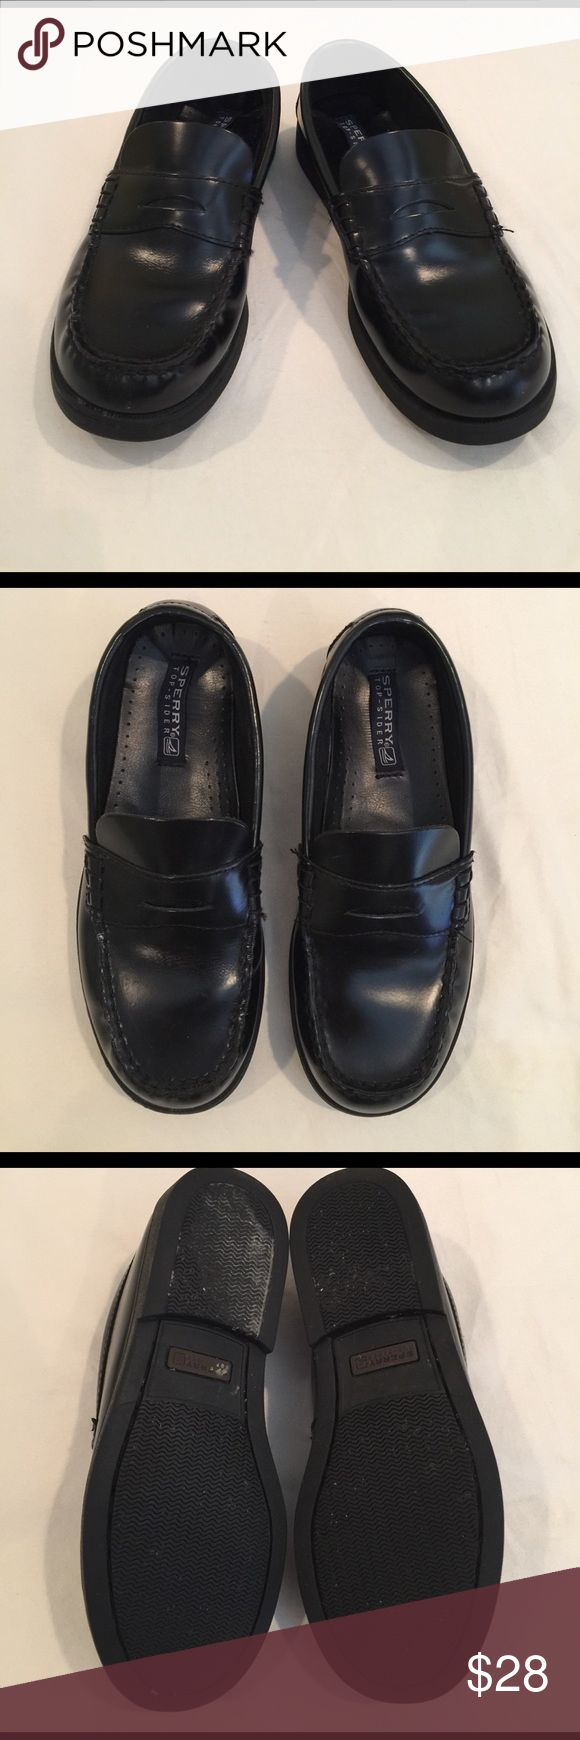 Boys Sperry Top-sider Black Colton shoe Boys Penny Loafer Style Dress shoe👞👞👞Shoes are in very good condition. The only wear that shows is on the soles. 🎉🎉🎉🎉🎉Sperry Top-sider, Colton Style.                             Leather uppers, Boys size 4M. Sperry Top-Sider Shoes Dress Shoes